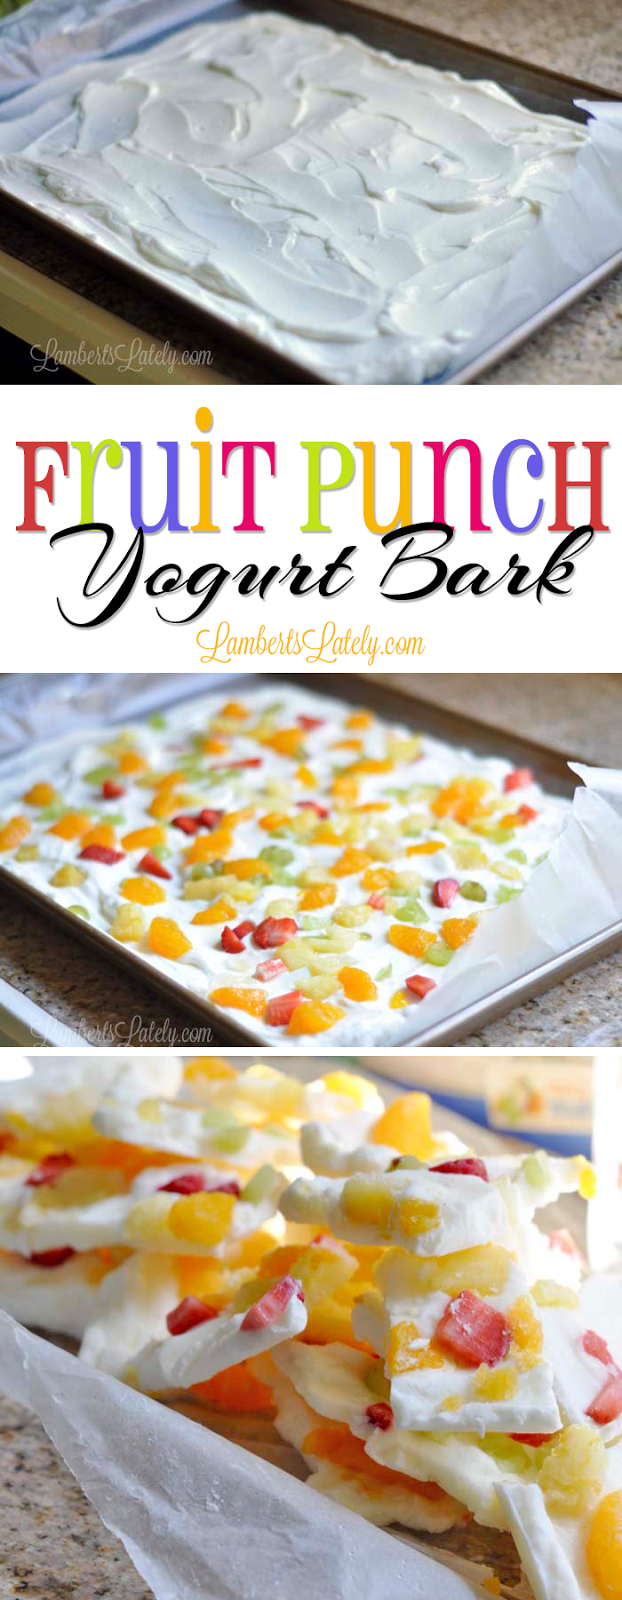 How delicious does Fruit Punch Yogurt Bark sound?  This would be great for a kid's lunch or snack...it can even be eaten two ways!  Click through to see recipe and details (there's even a cute printable note on this site).